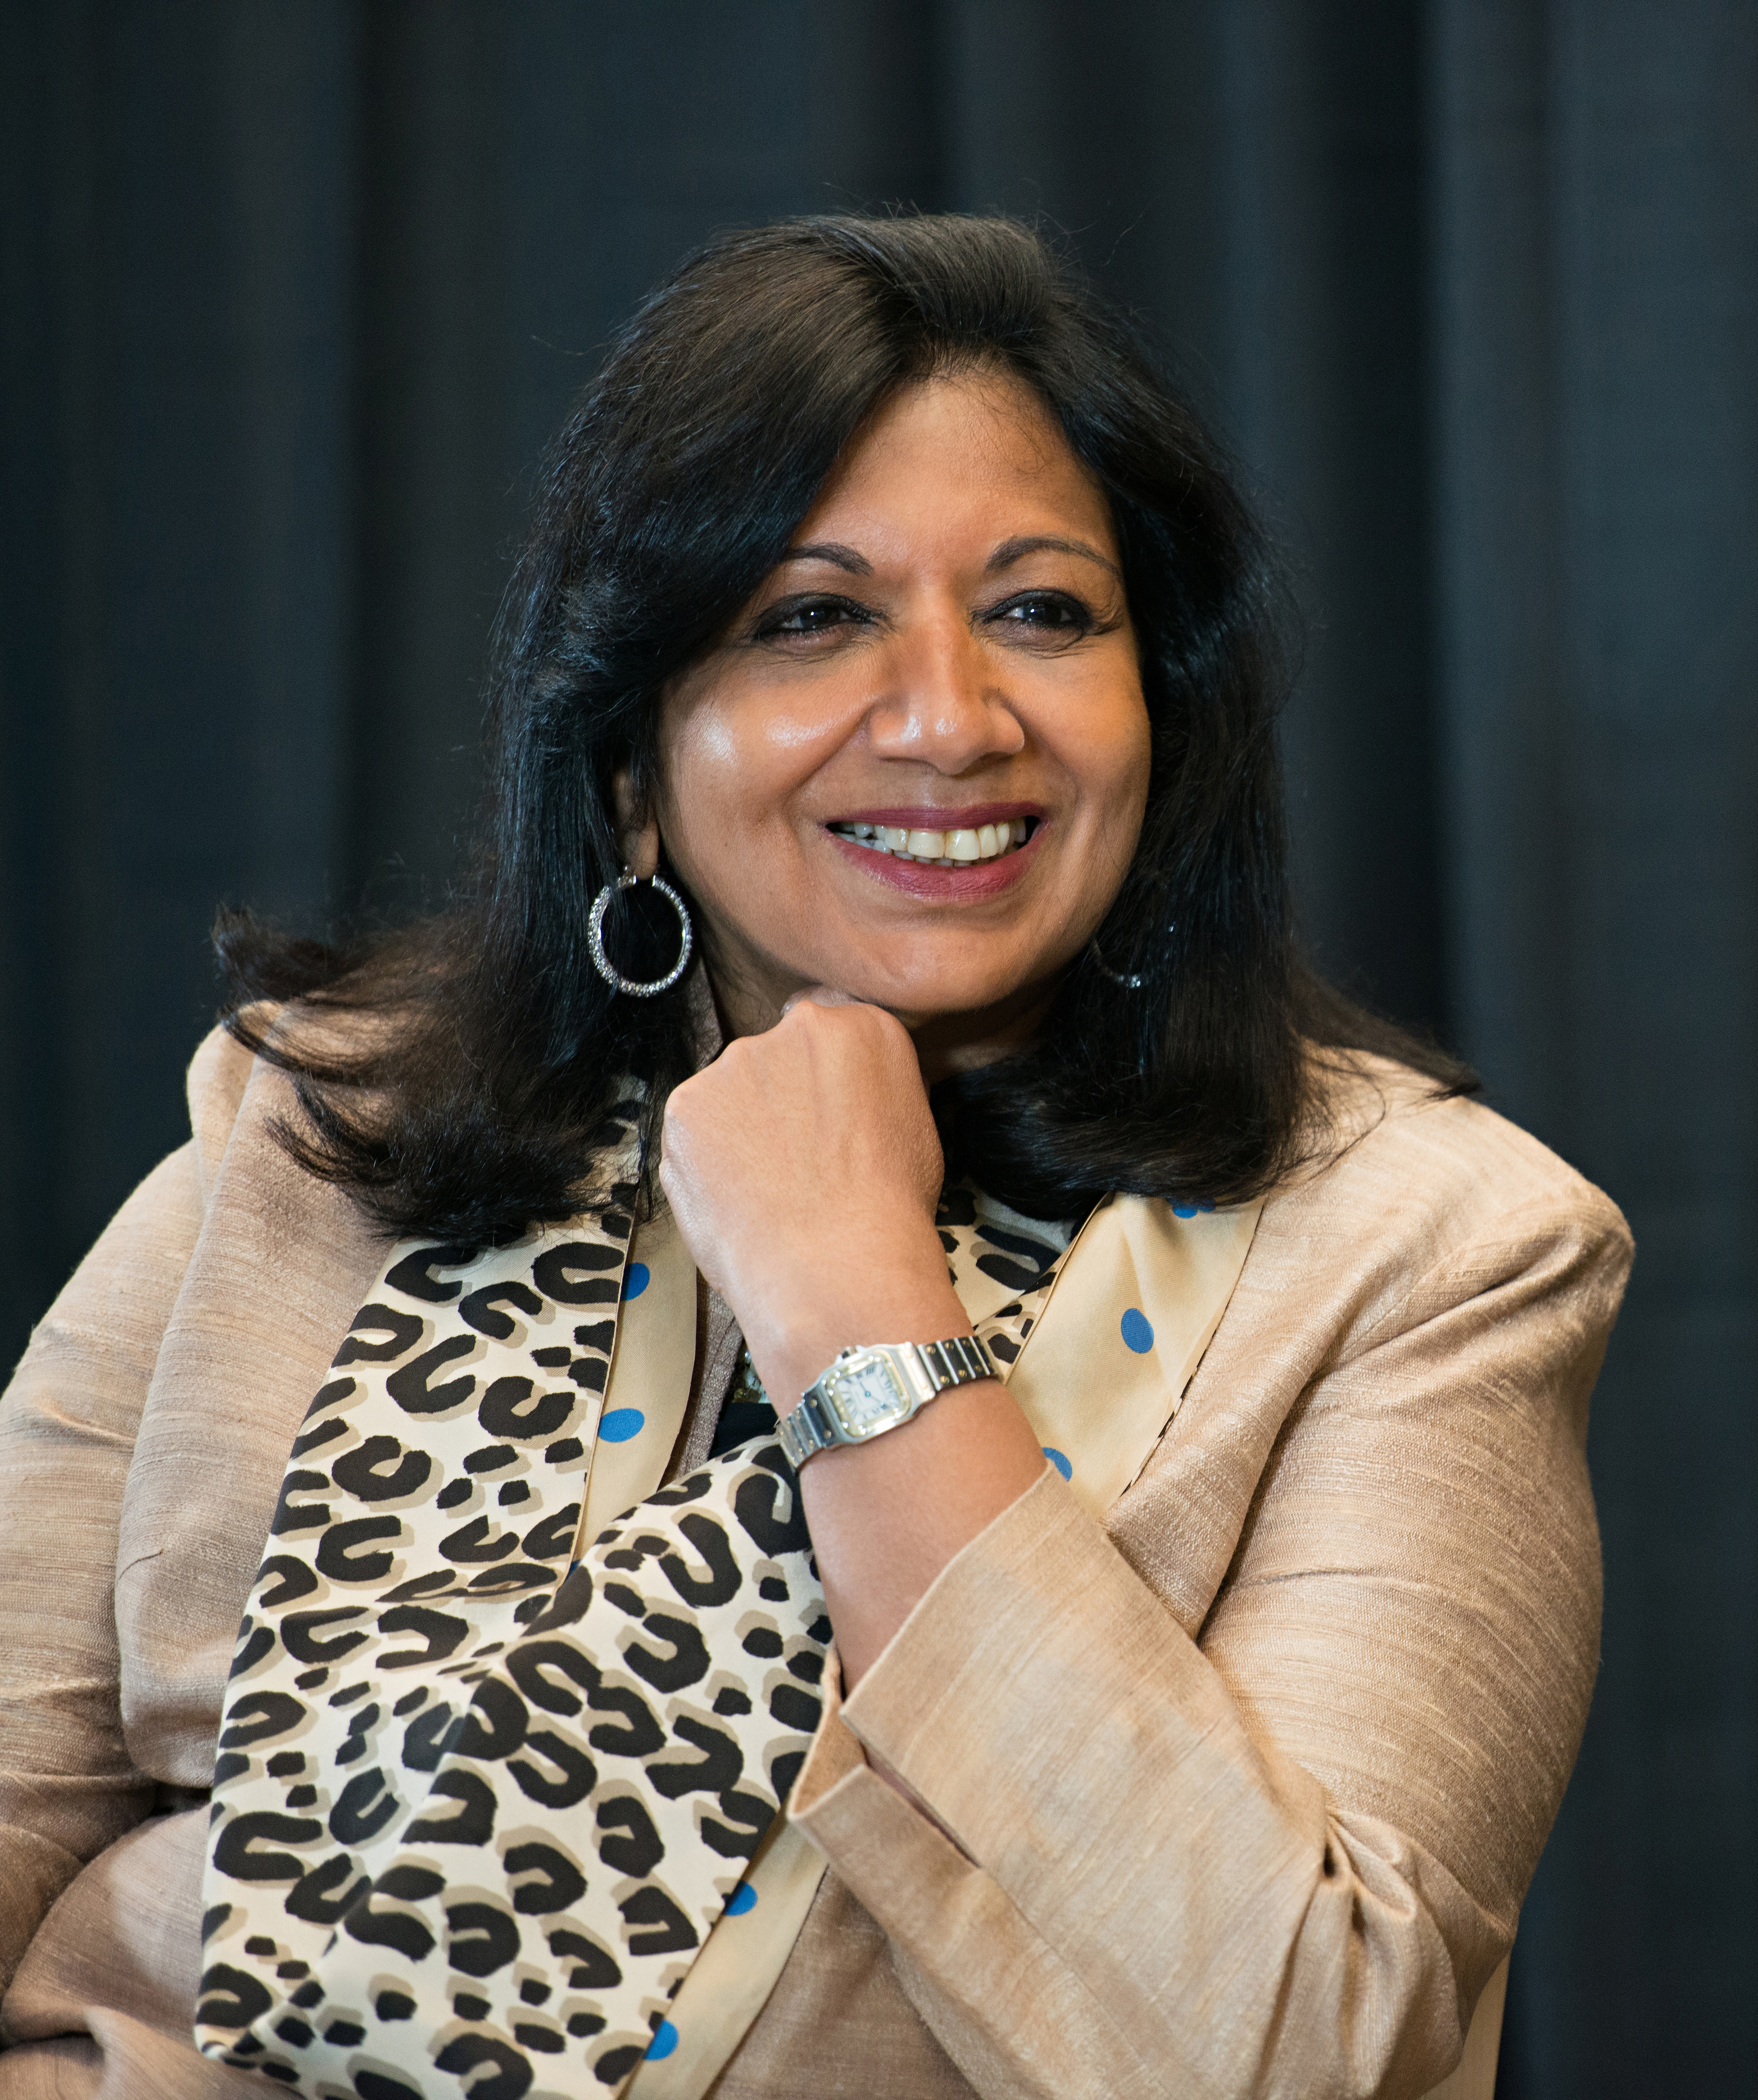 female entrepreneur of india kiran mazumdar Kiran mazumdar-shaw on forbes india's richest self-made woman, kiran mazumdar-shaw, founded biopharma firm biocon in 1978 biocon makes a range of generics to treat, among much else, autoimmune diseases the world's most powerful female entrepreneurs, 2013 of the 100 remarkable women on the 2013.